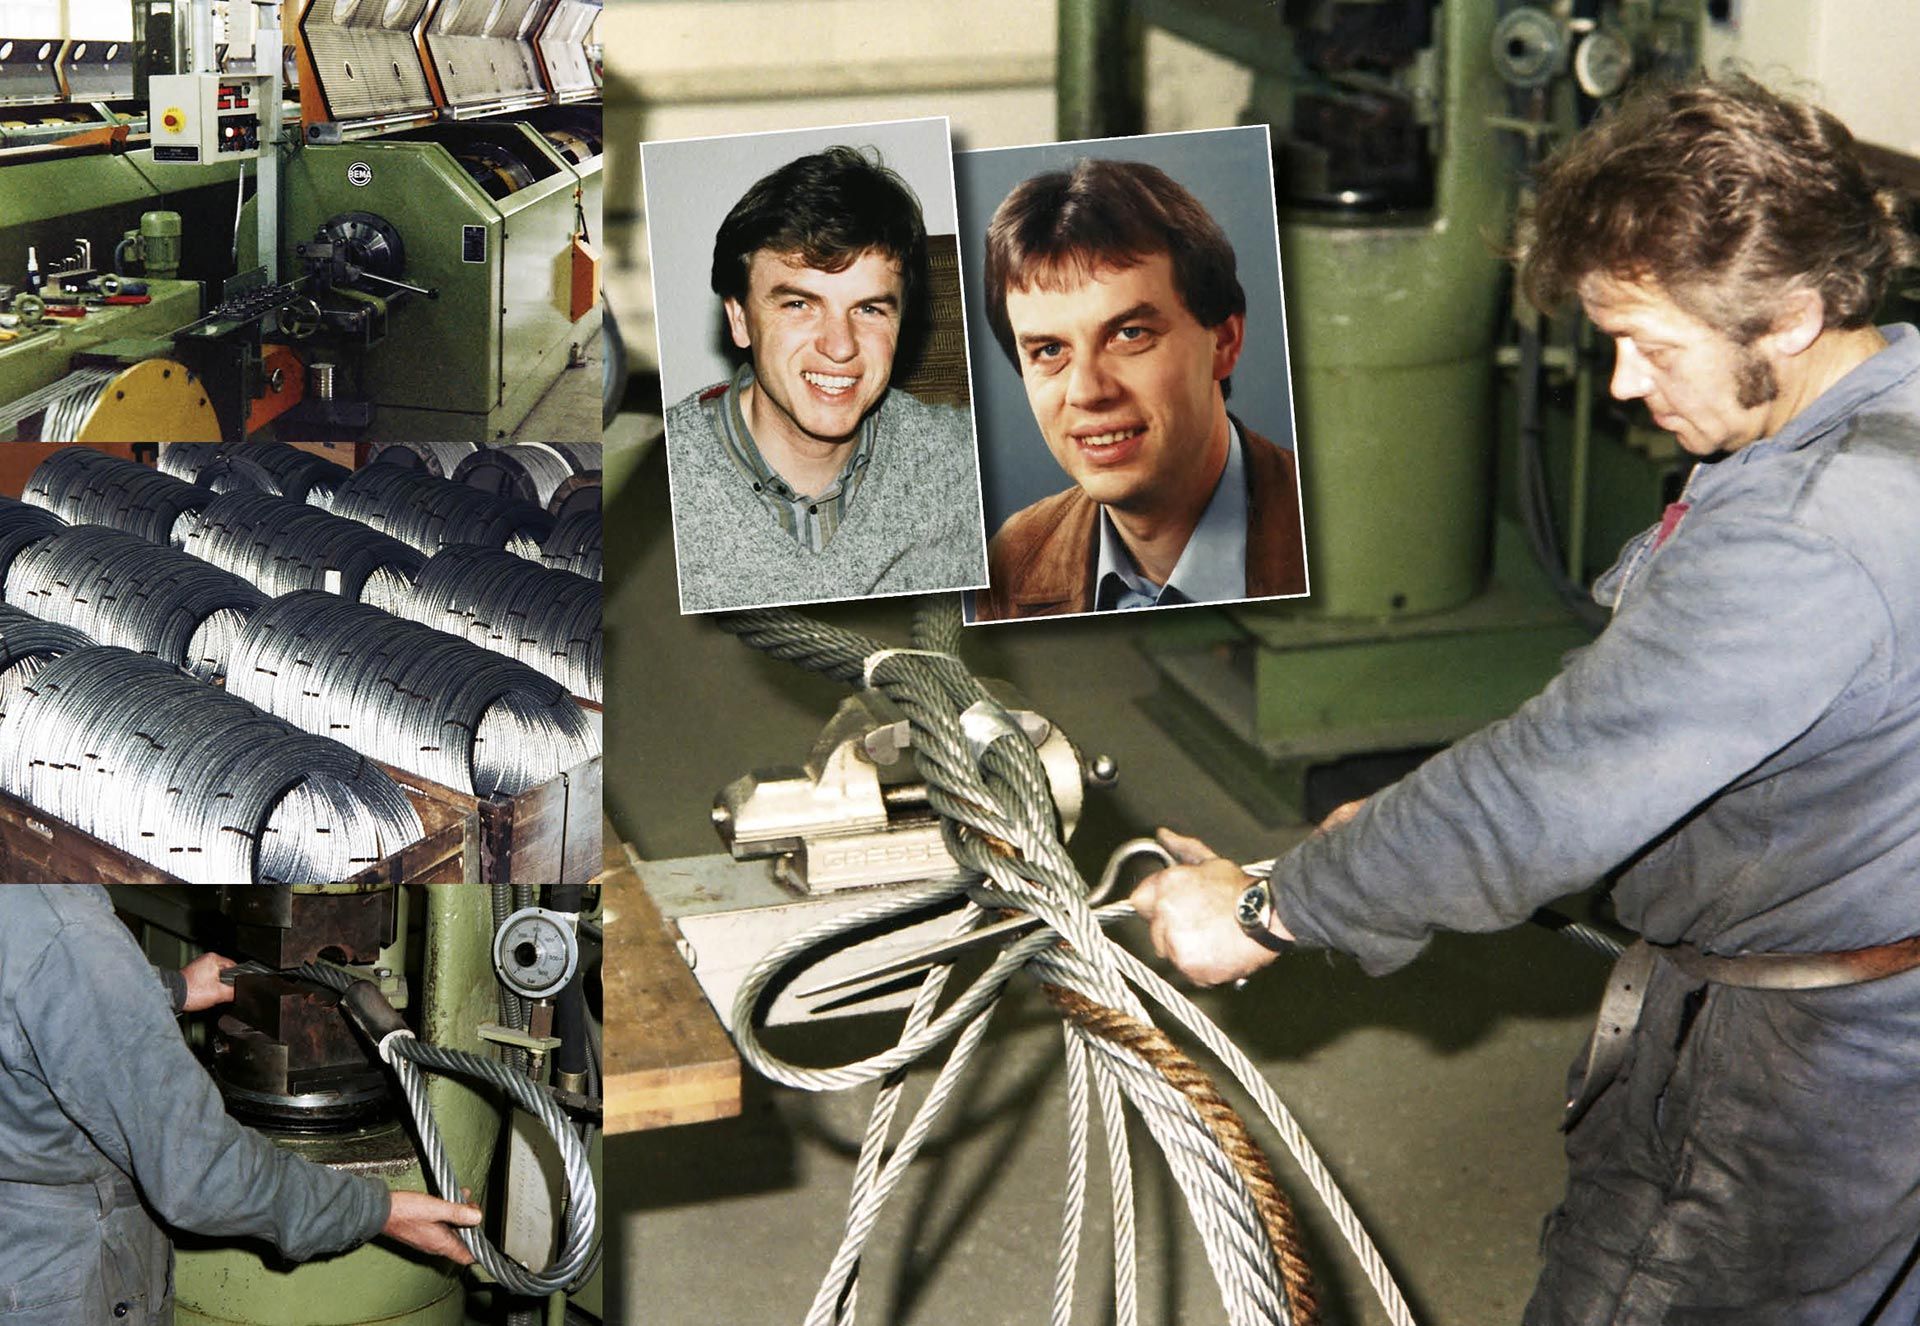 Images of wire rope production in the 1980s and Martin and Peter Jakob